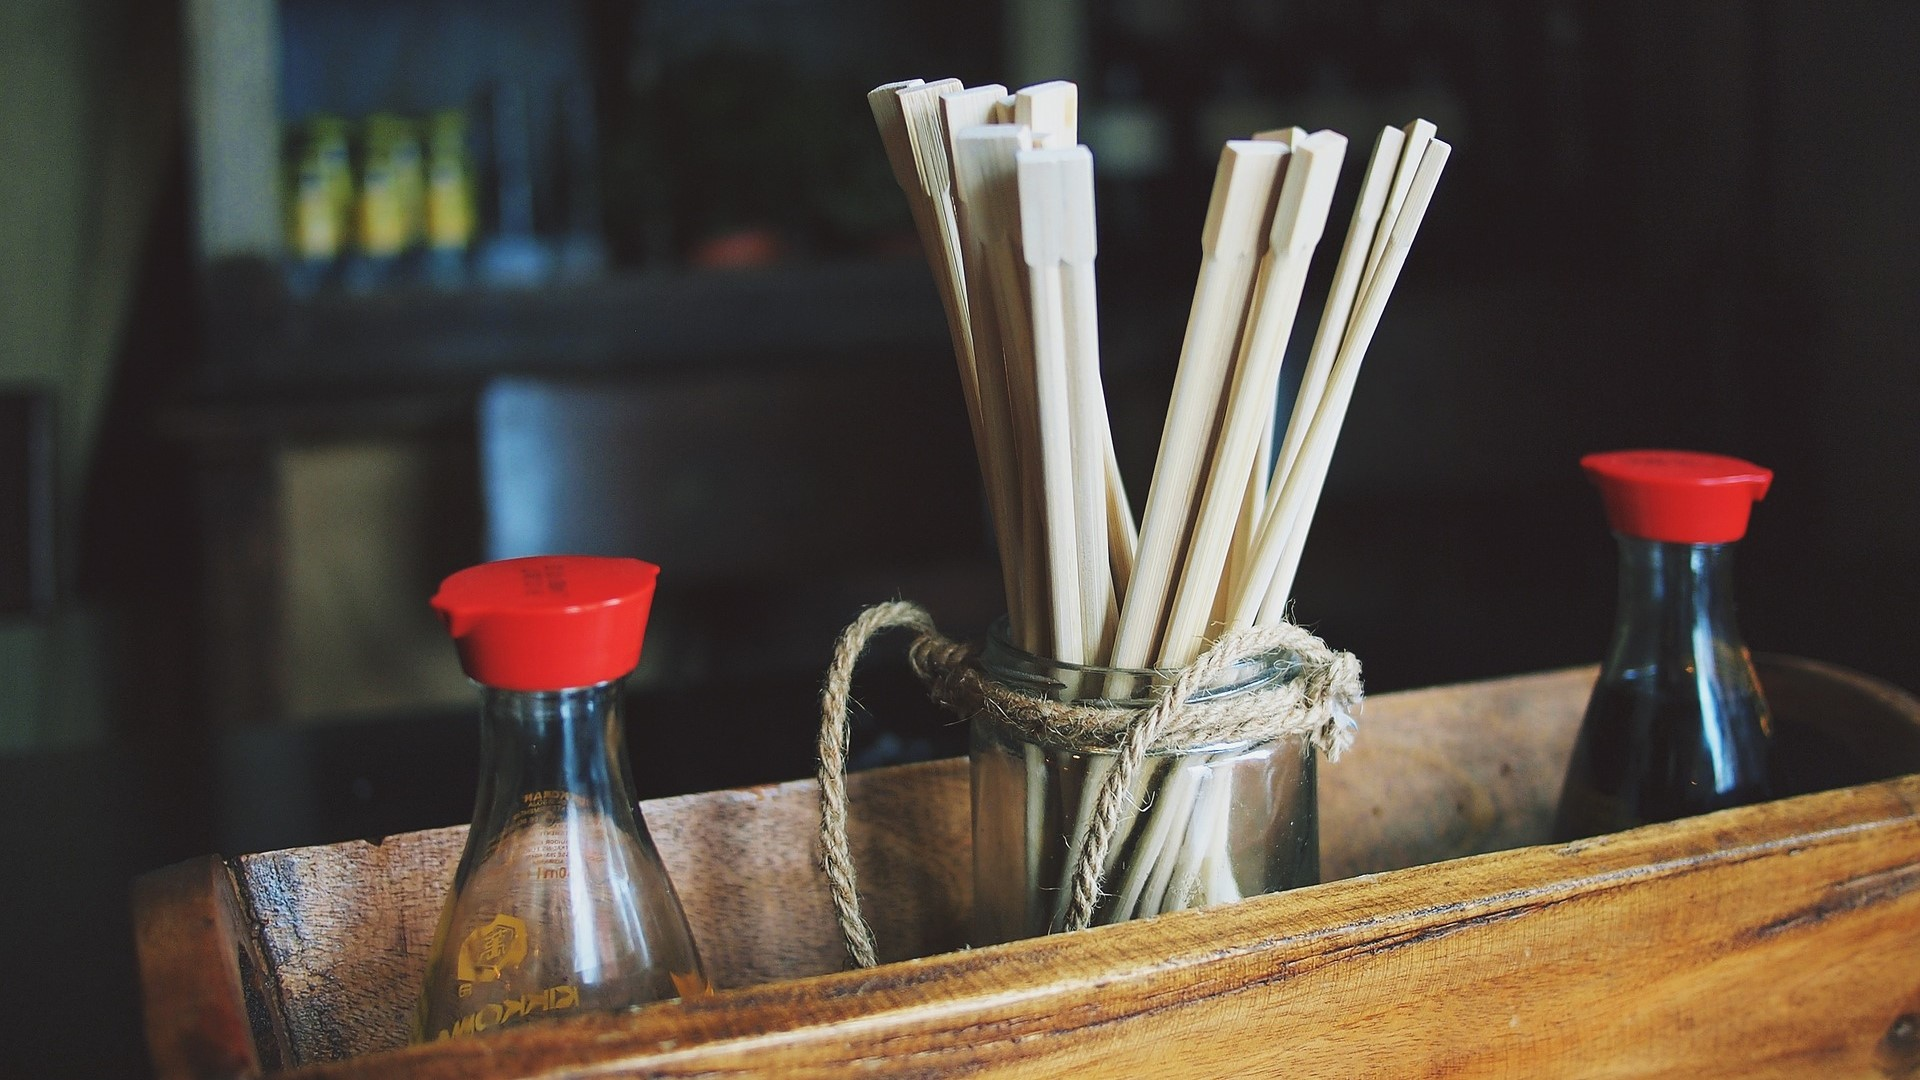 Image: Chopsticks inside of a container with soy sauce